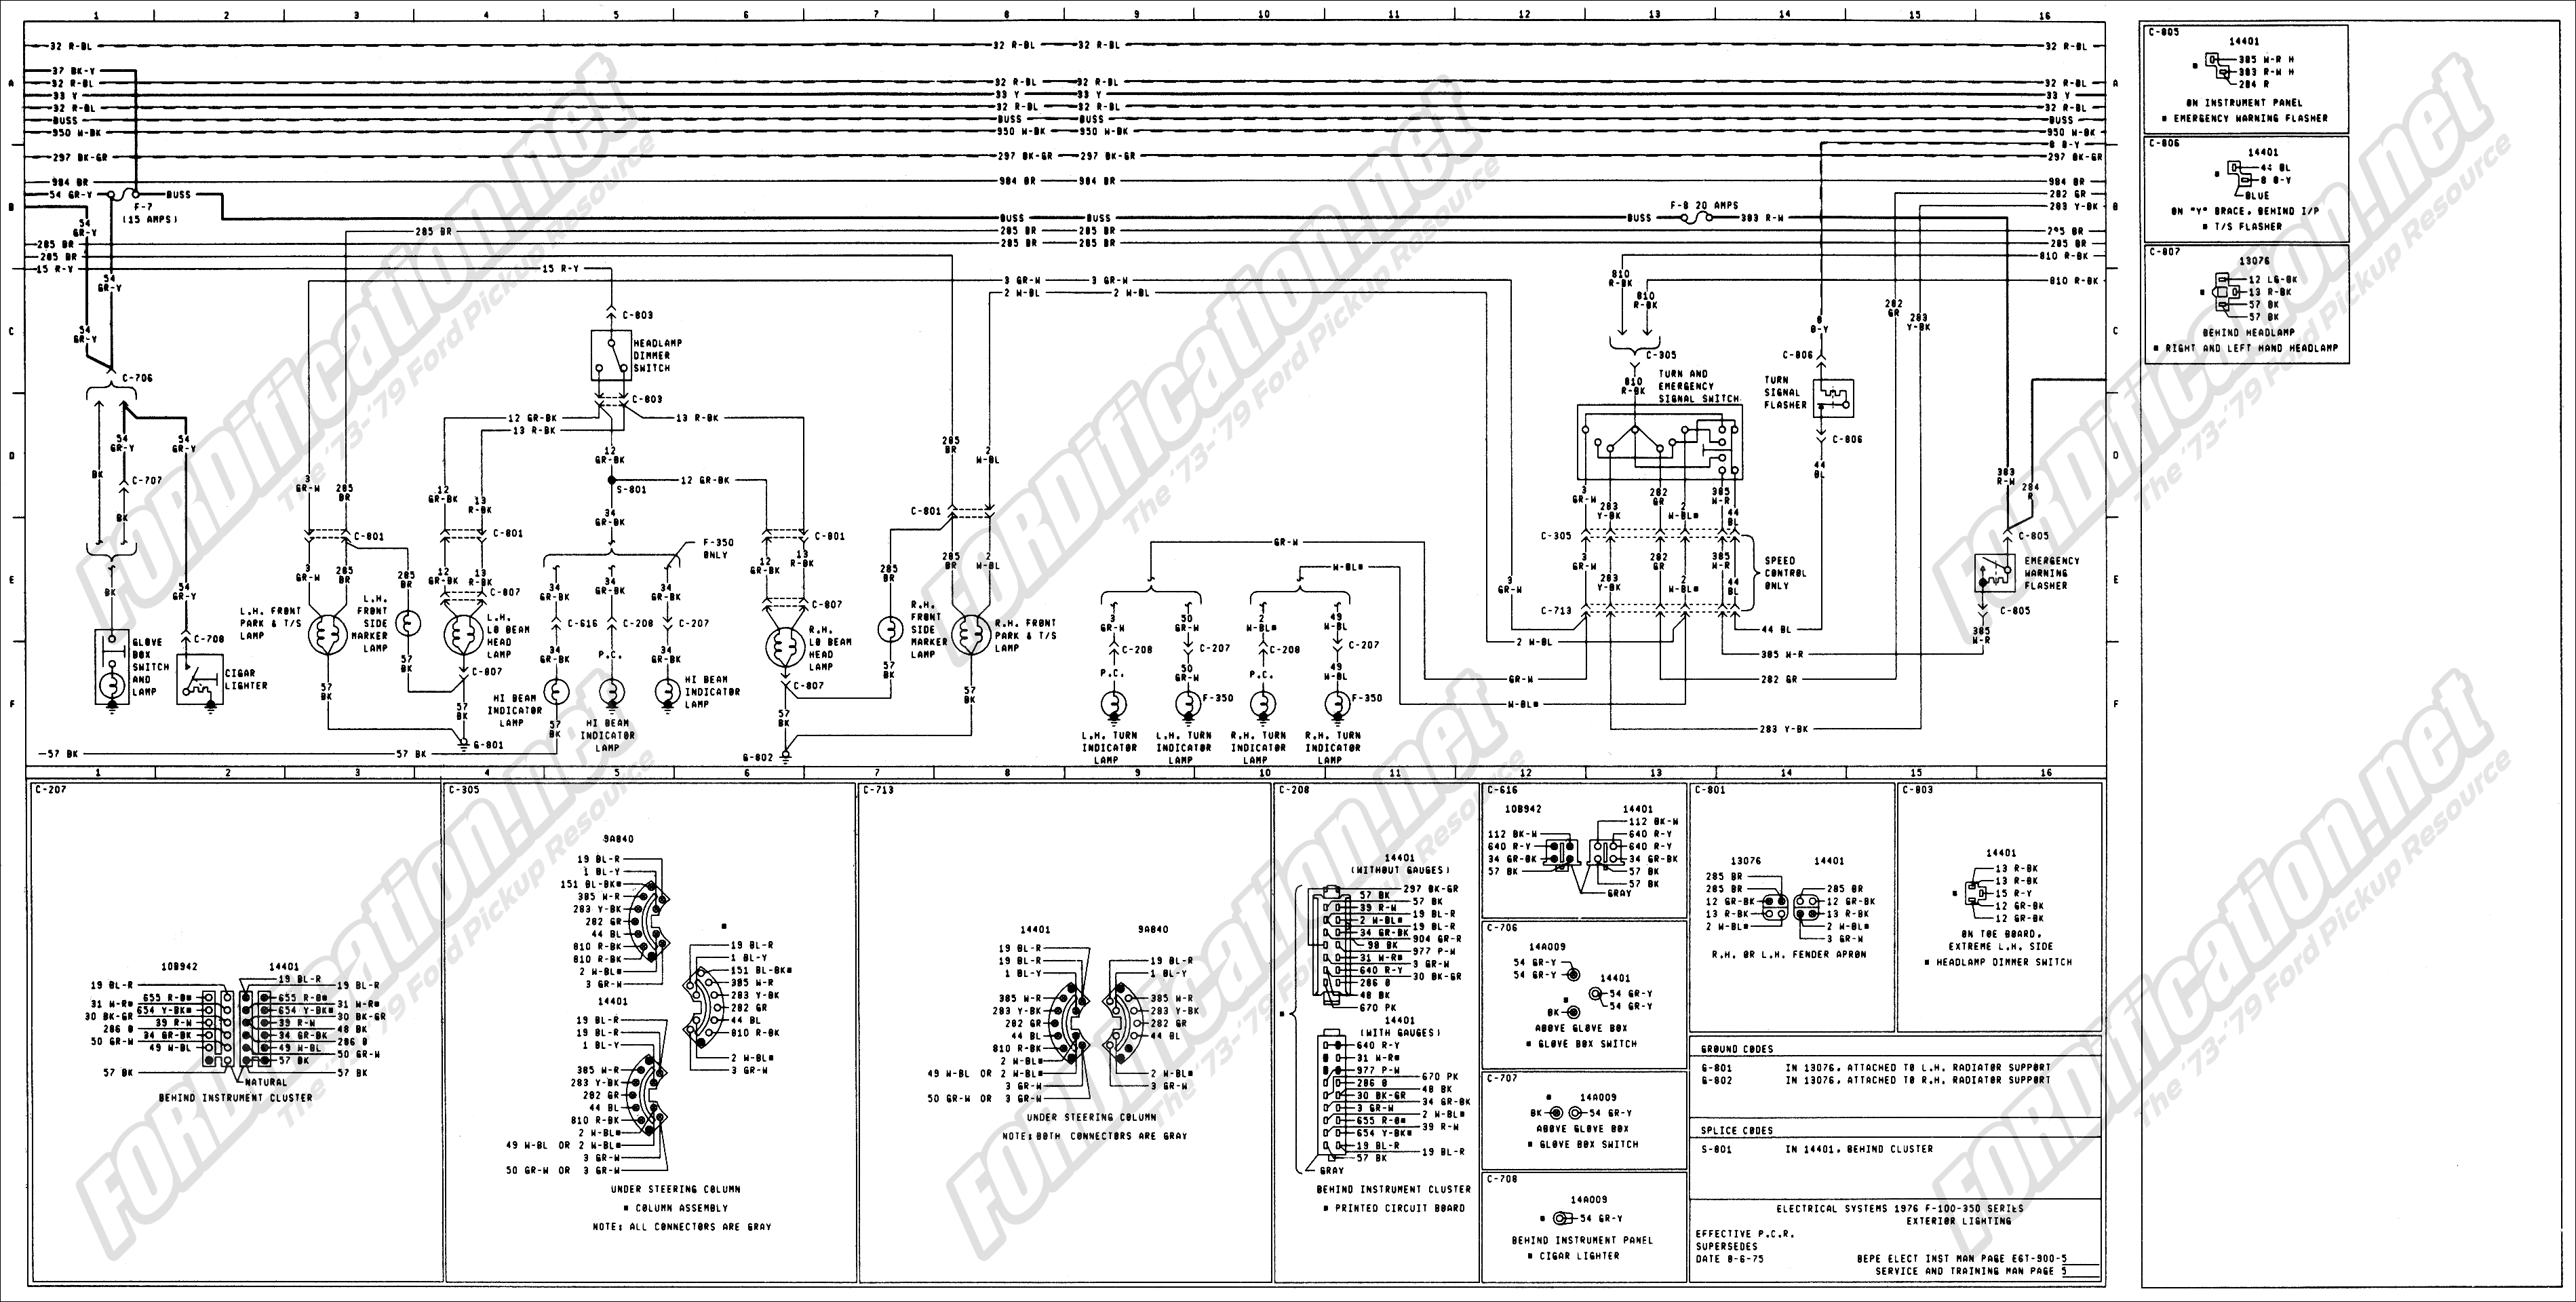 wiring_76master_5of9 1973 1979 ford truck wiring diagrams & schematics fordification net ford f250 wiring diagram at nearapp.co